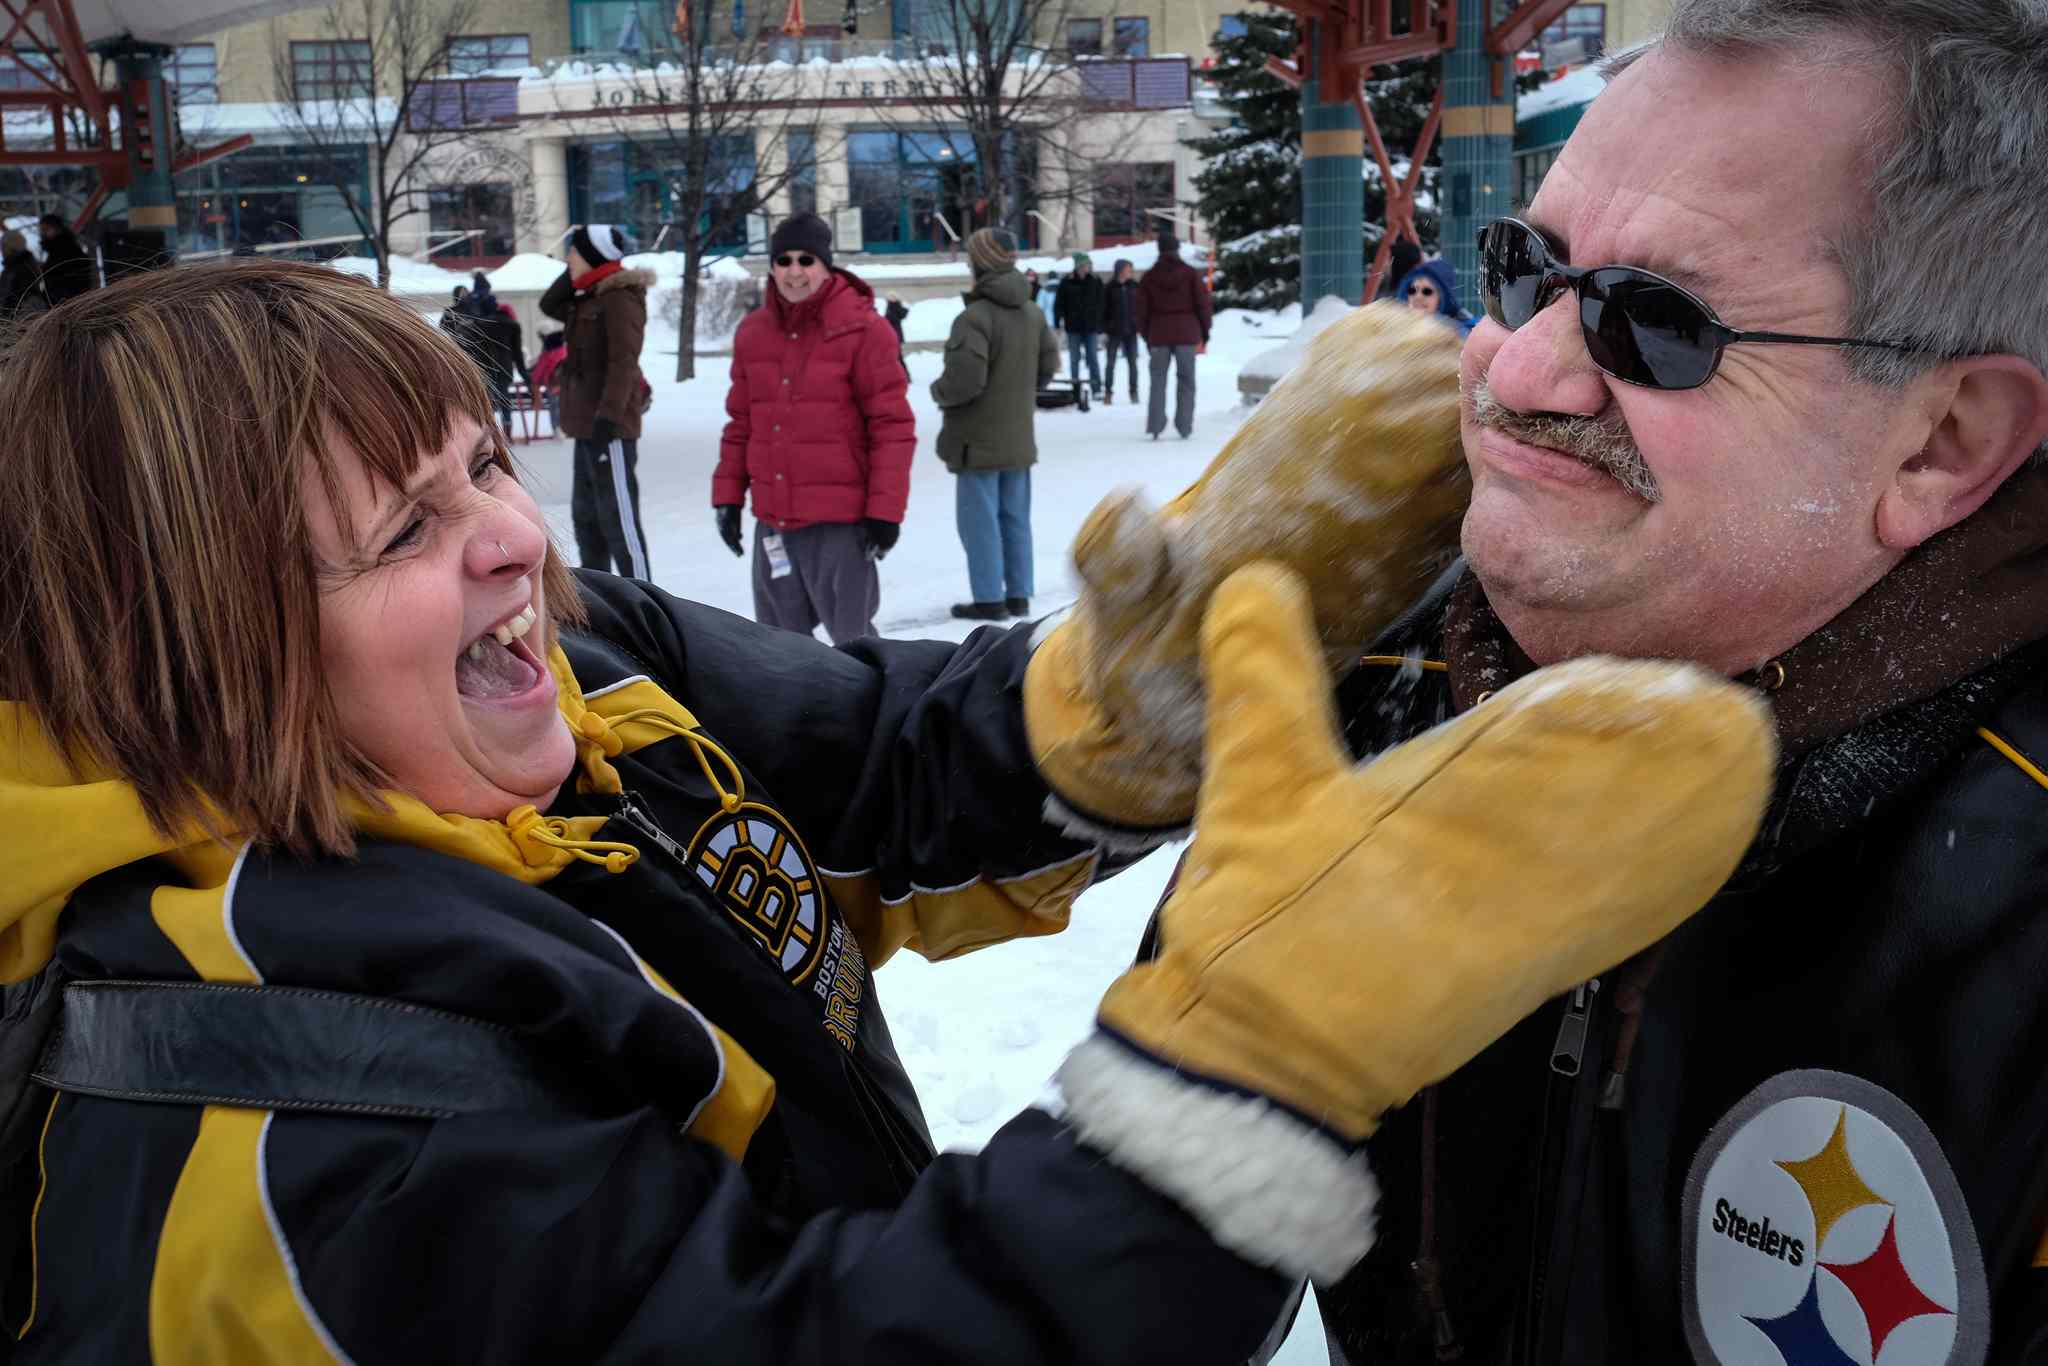 Cathy gives Tom a face full of snow after she slid down the hill of snow at The Forks.